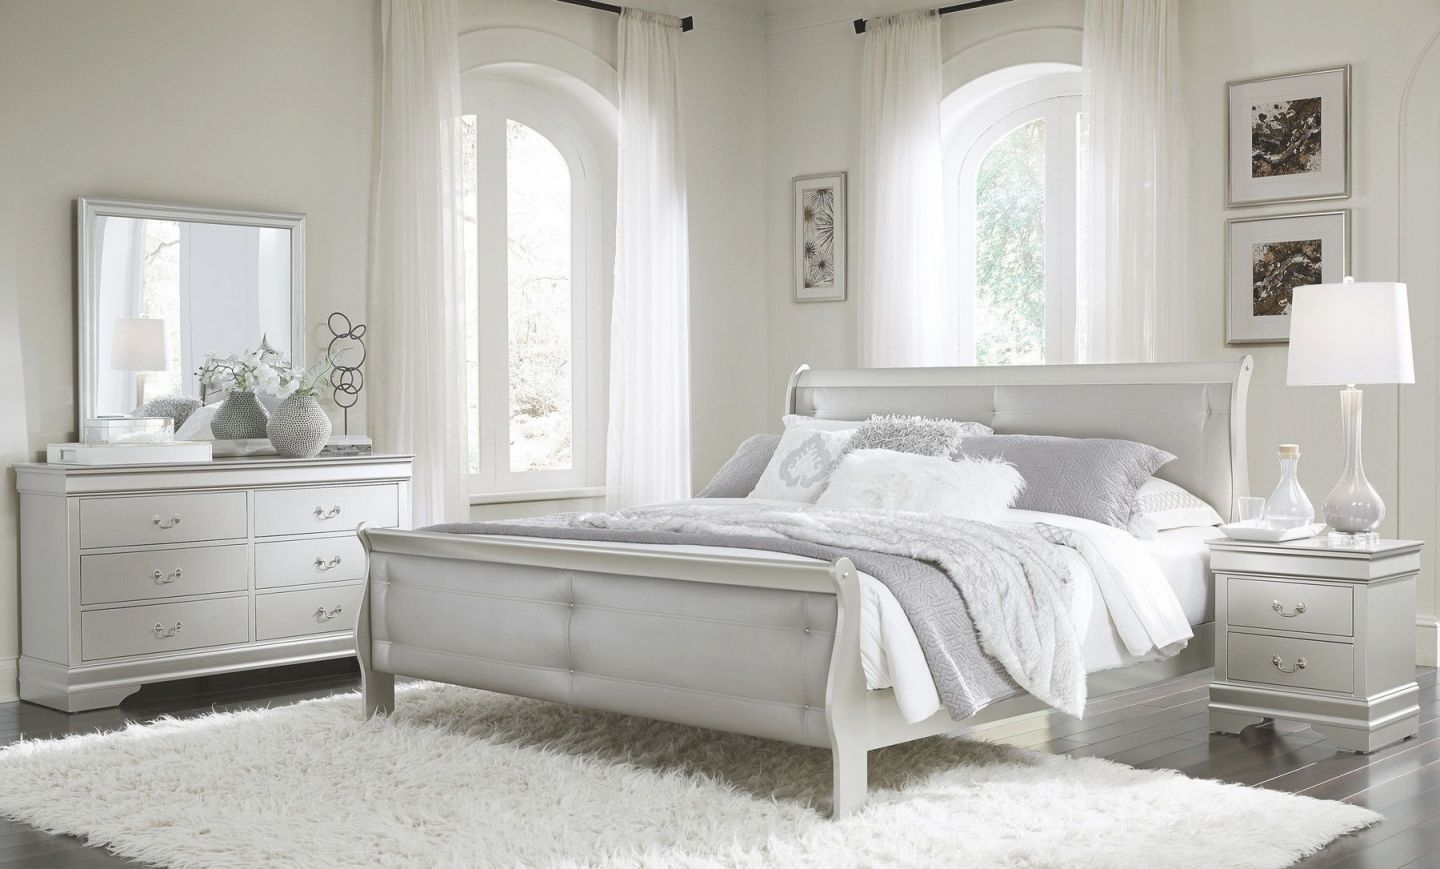 Marley Silver Queen Set Queen Size B,2Ns,dr,mr regarding Luxury Bedroom Set Queen Size